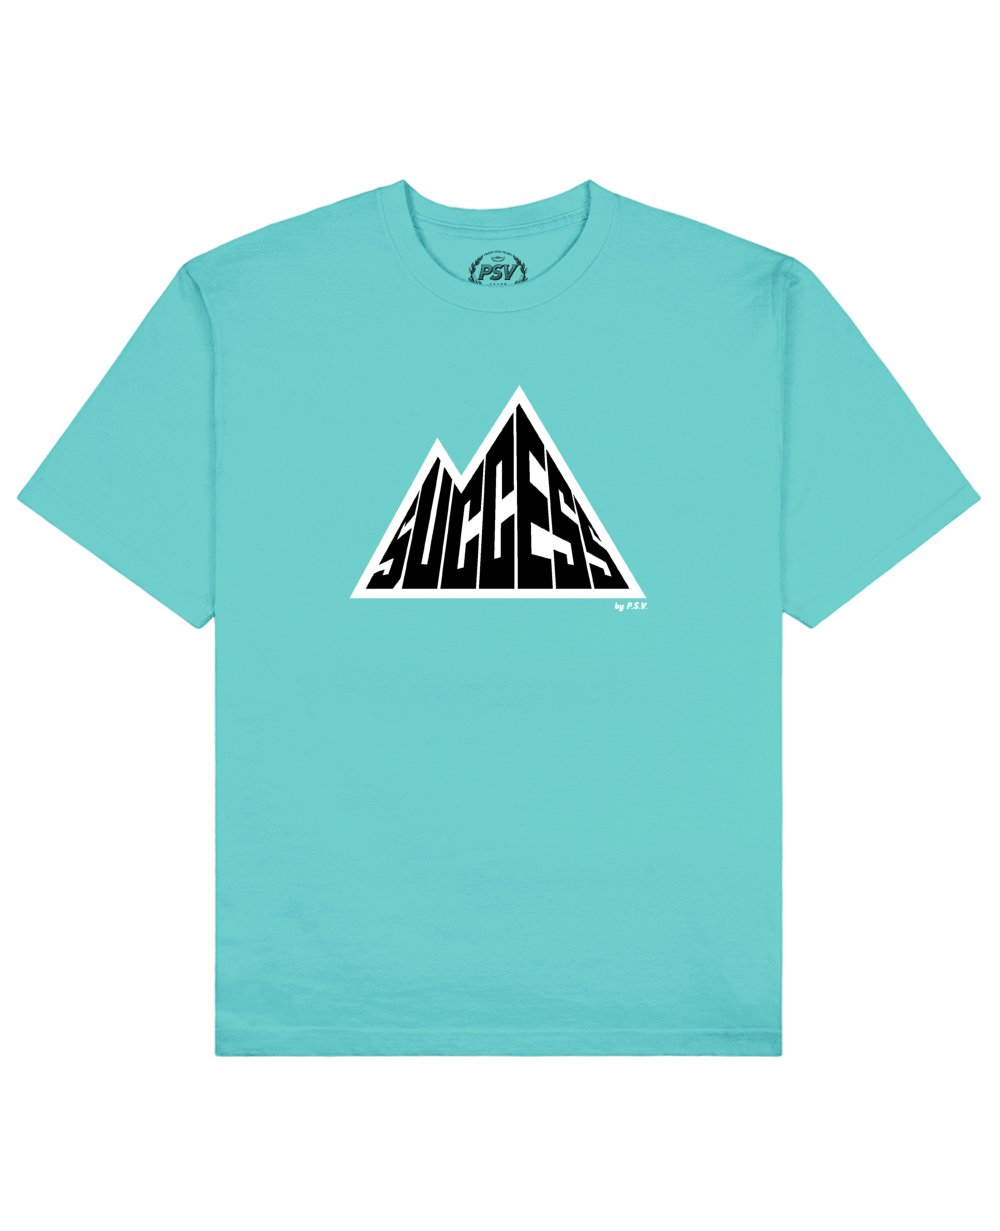 Success is a Mountain Print T-Shirt in Aqua - T-Shirts - PSV - BRANMA